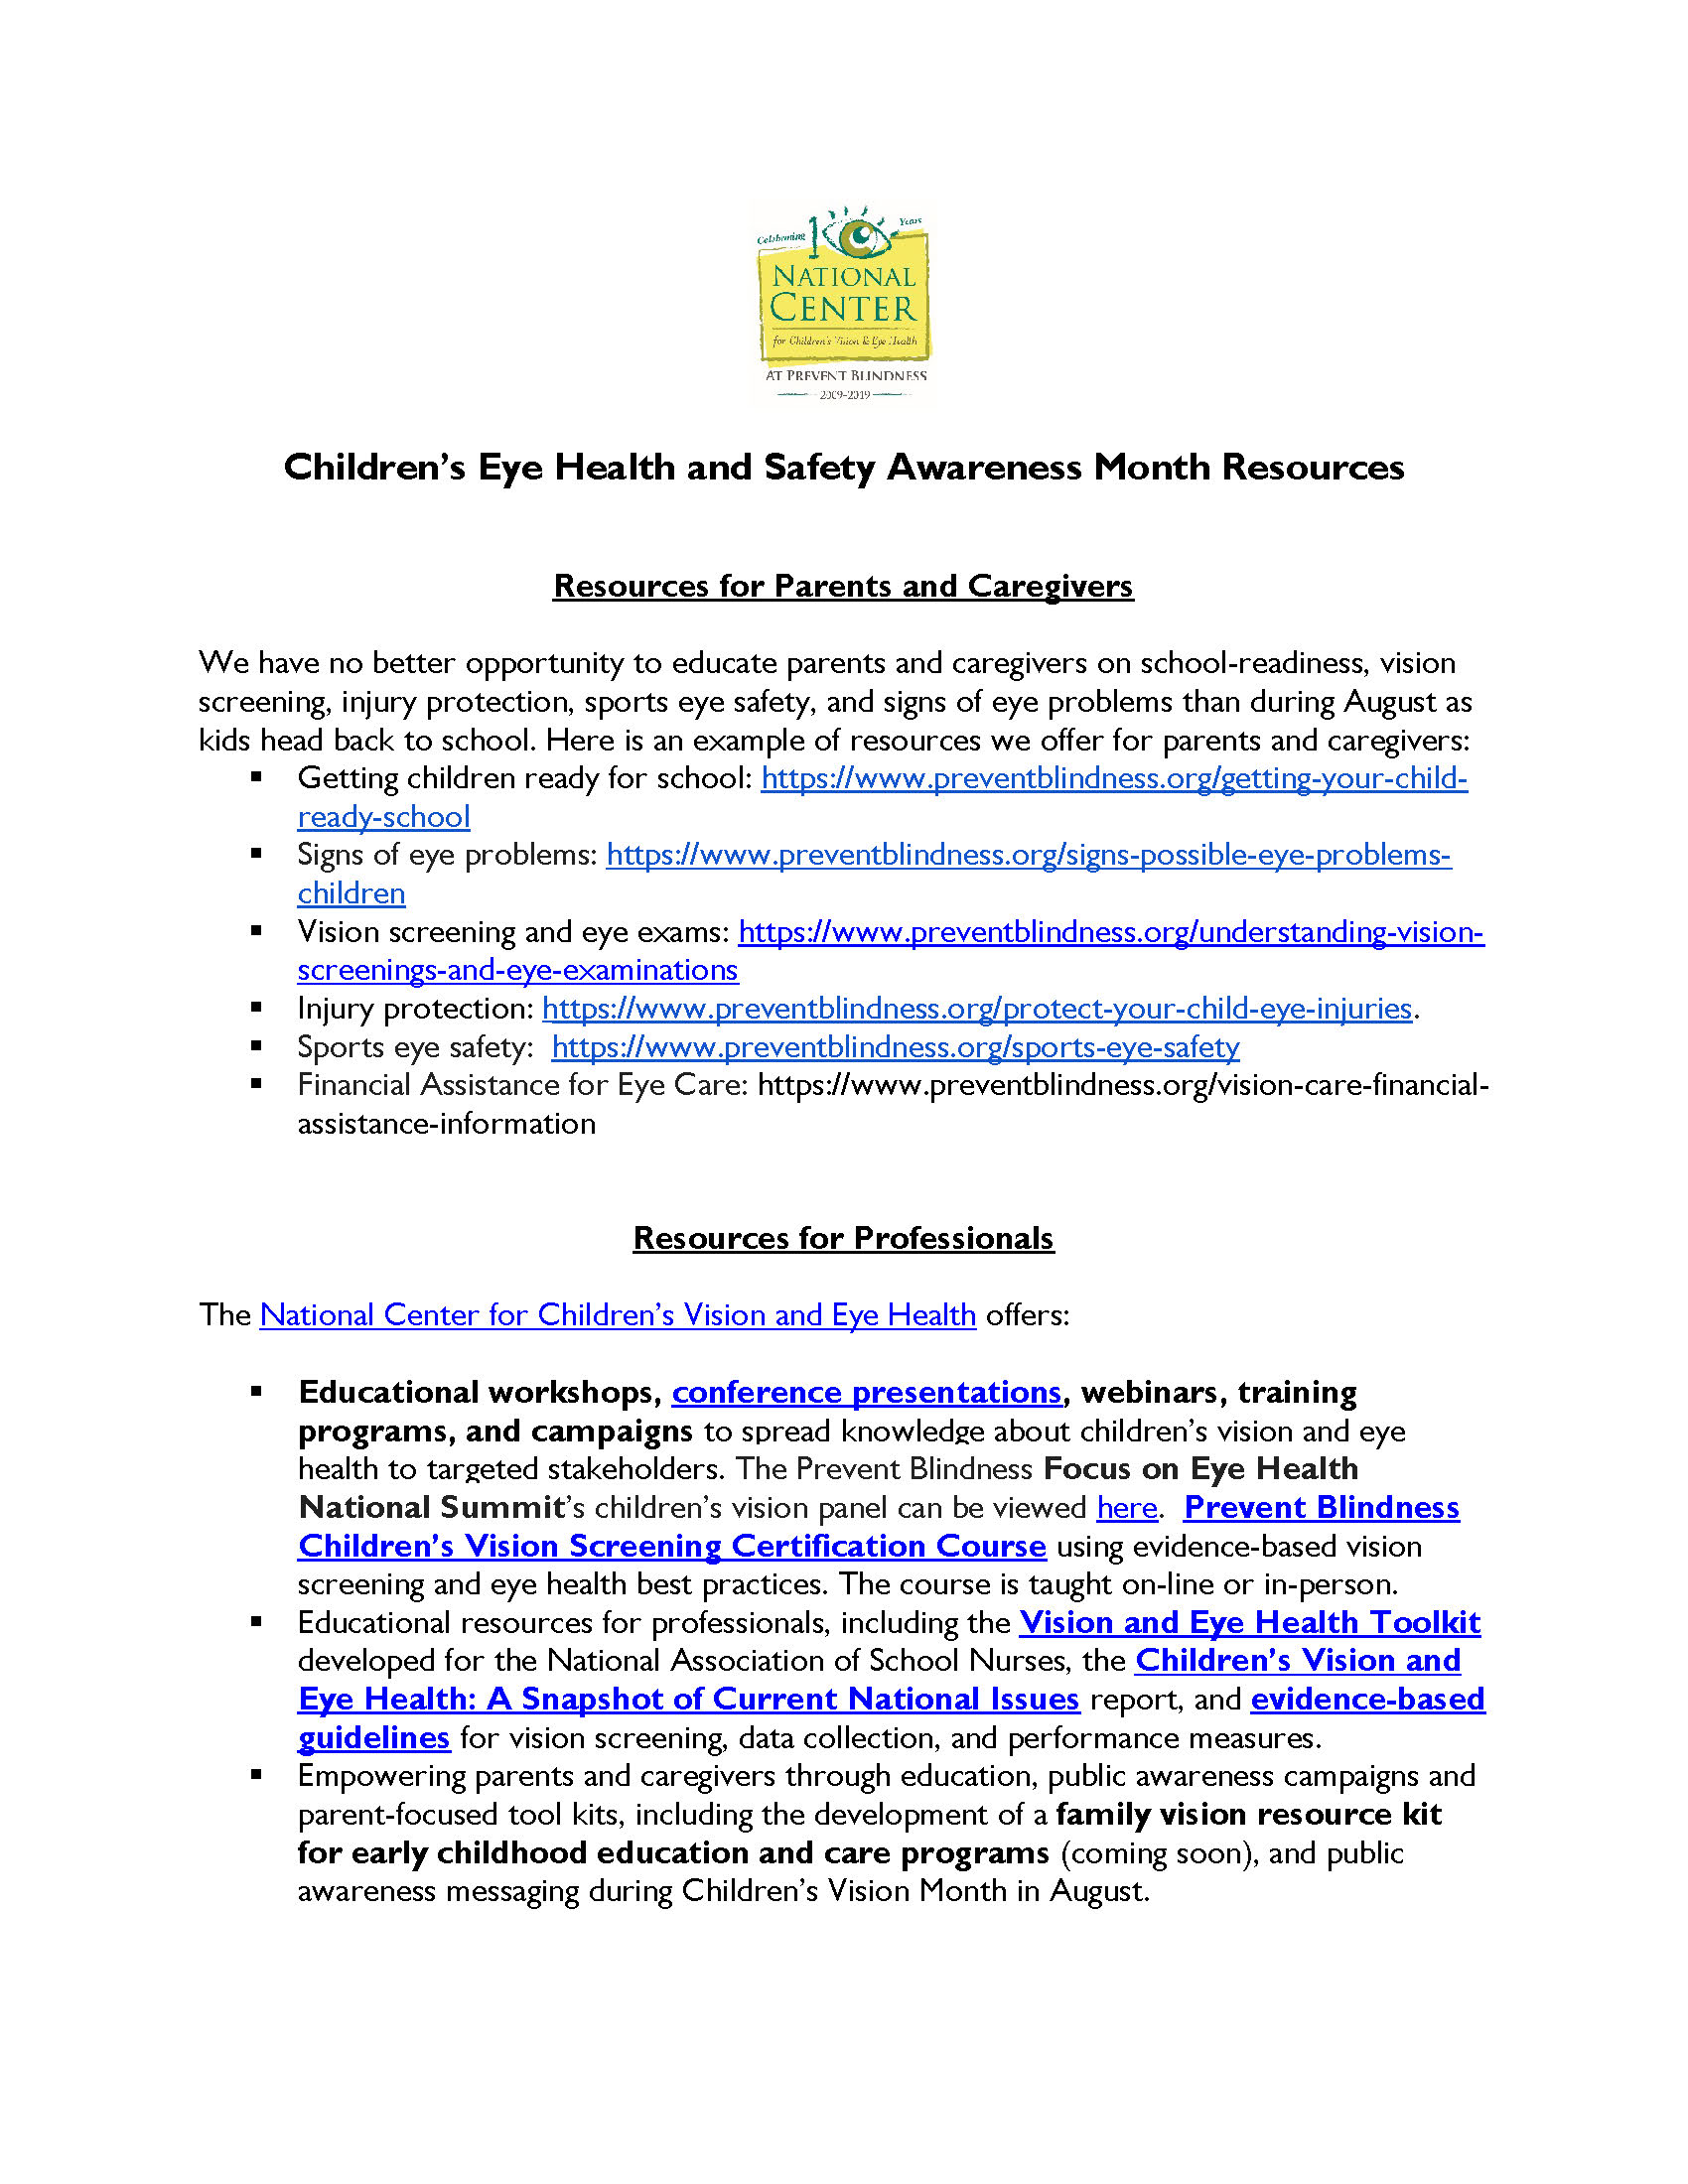 Click image above to download Vision Resources for Parents and Caregivers